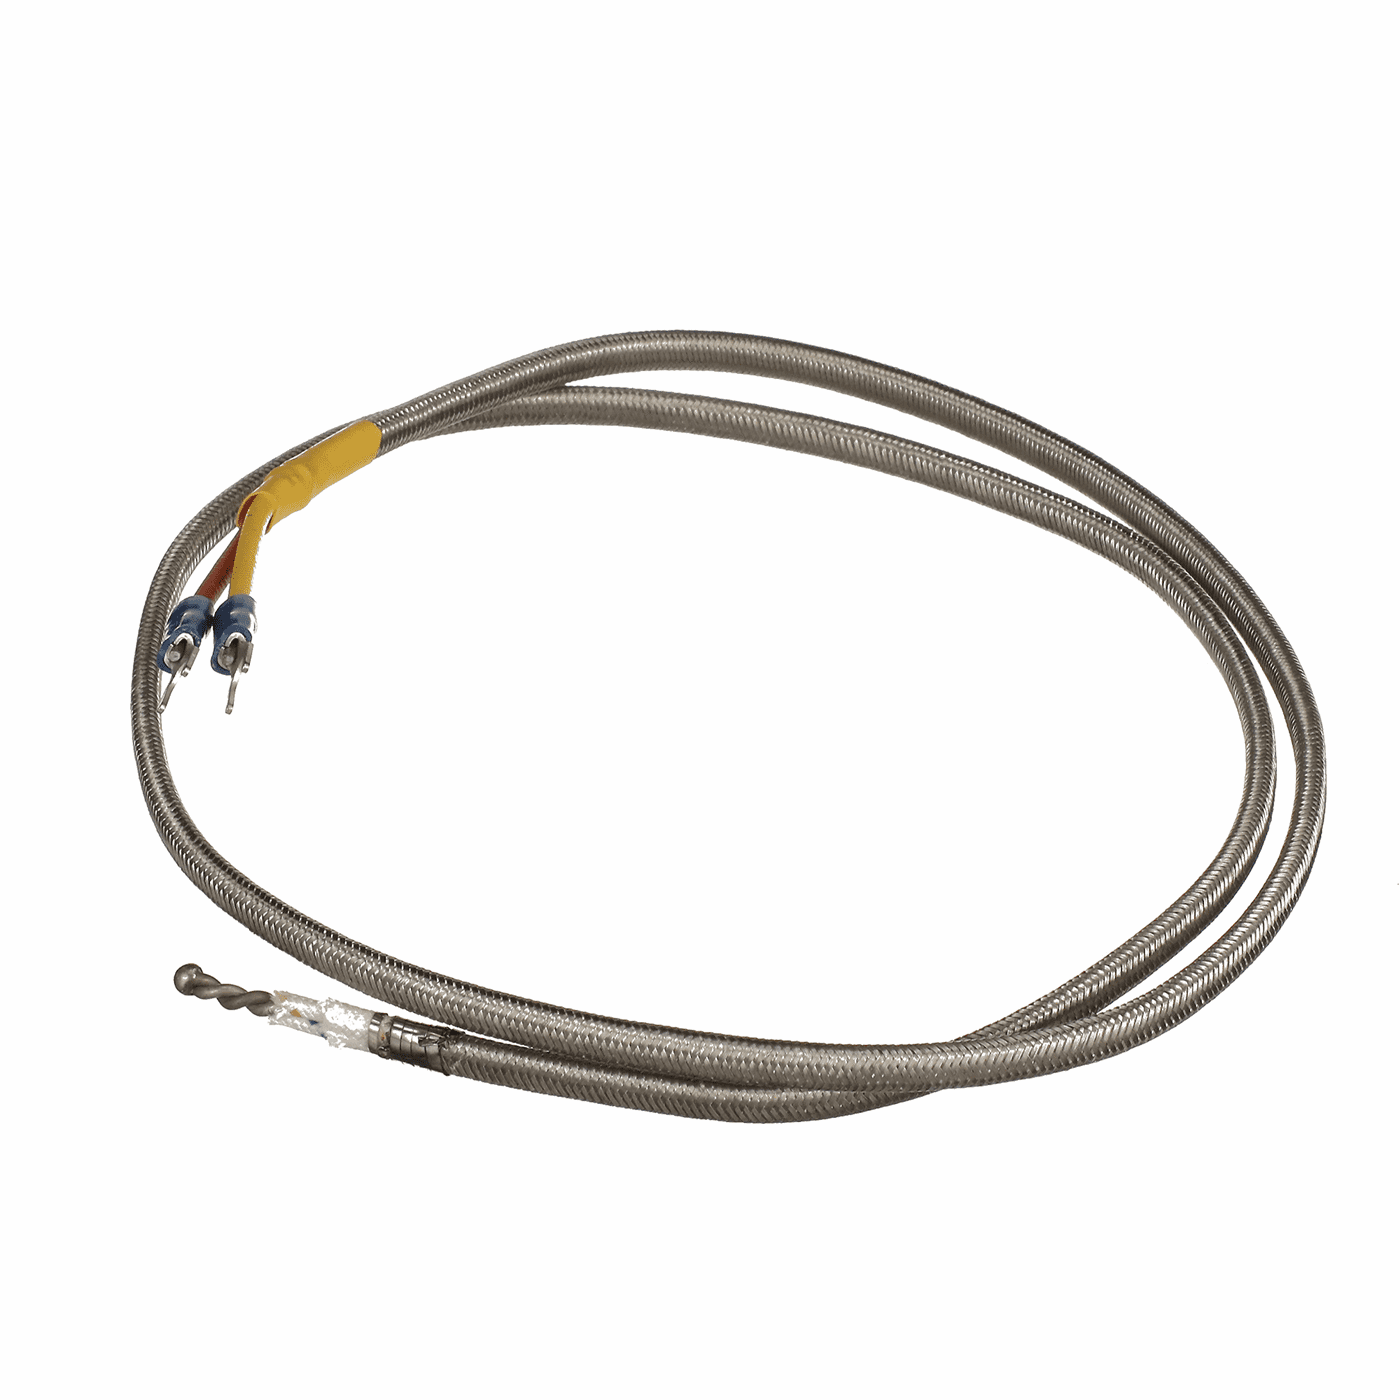 Quadrafire Thermocouple for many models see description, #812-0210